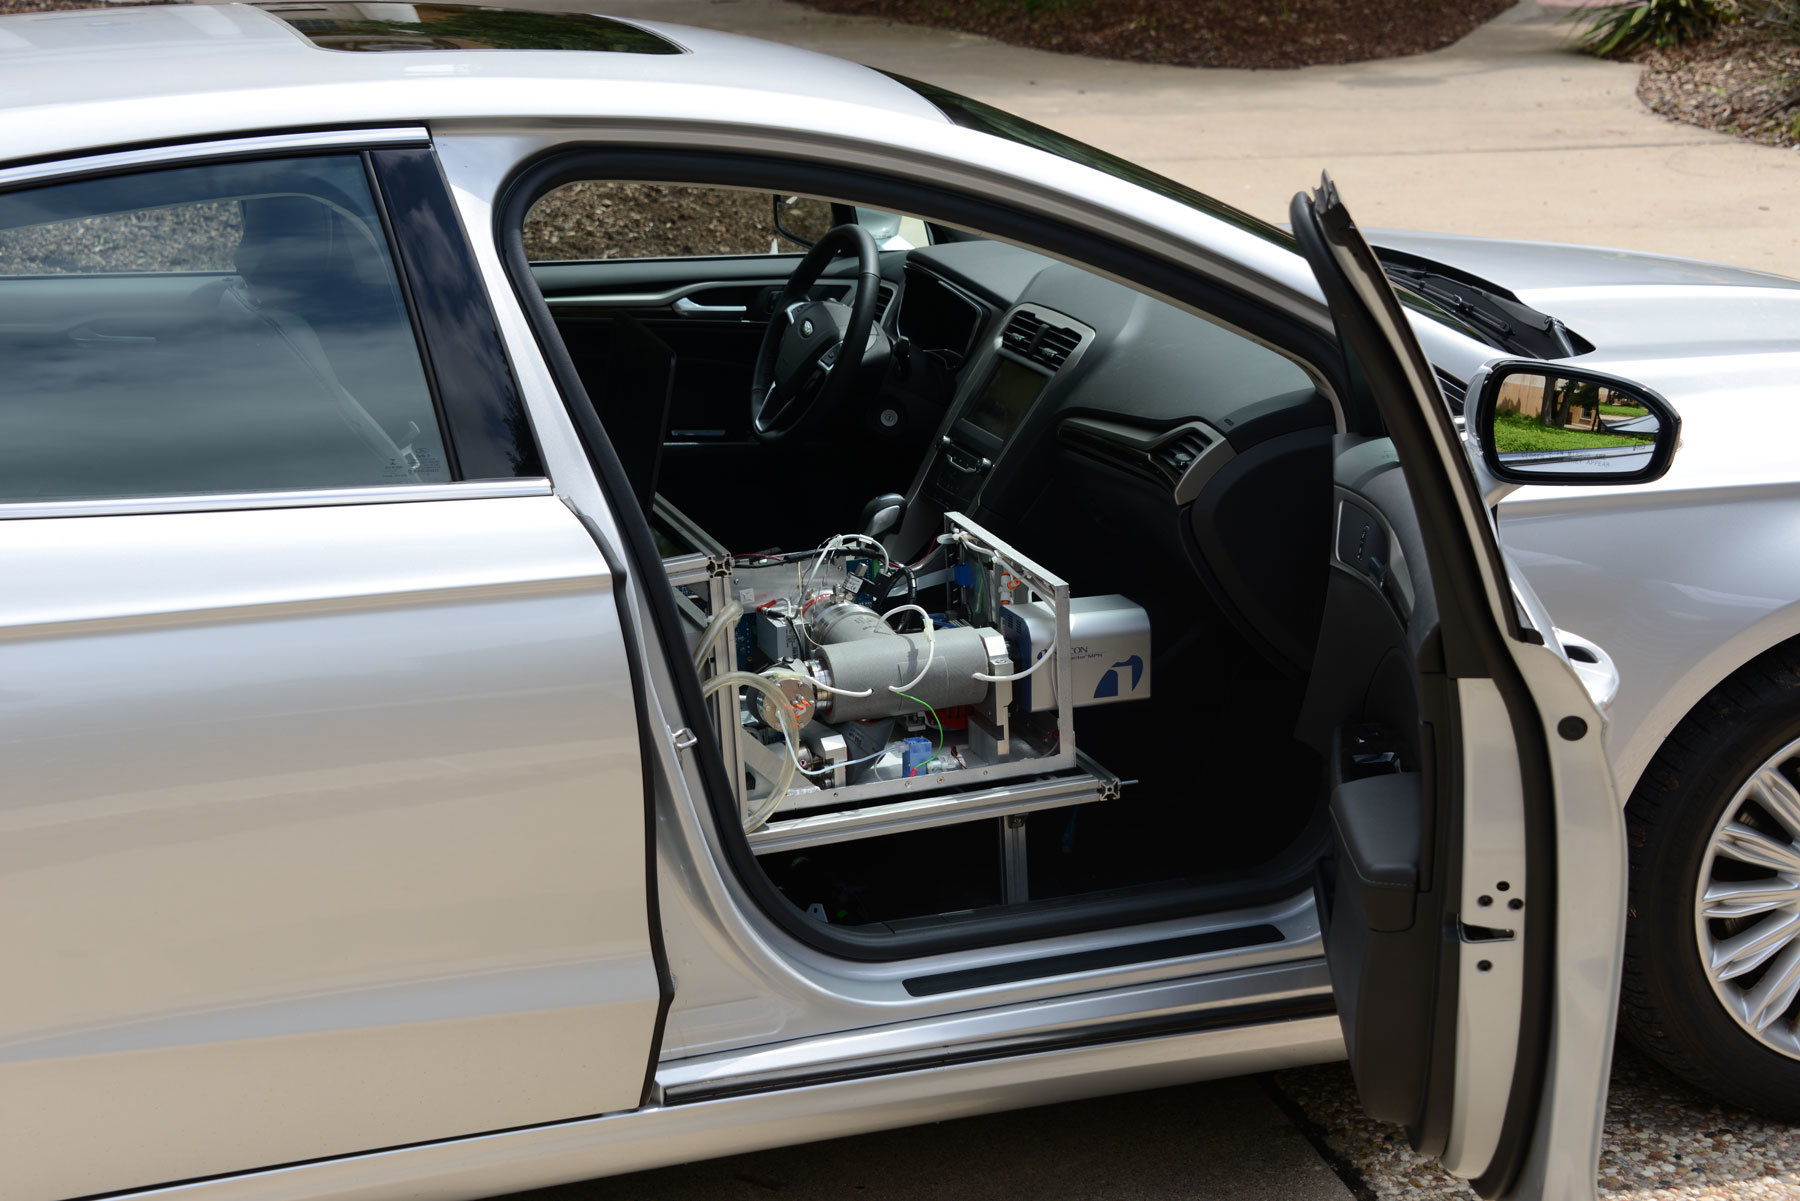 Modded Ford Fusion Can Sniff Drugs a Quarter Mile Away